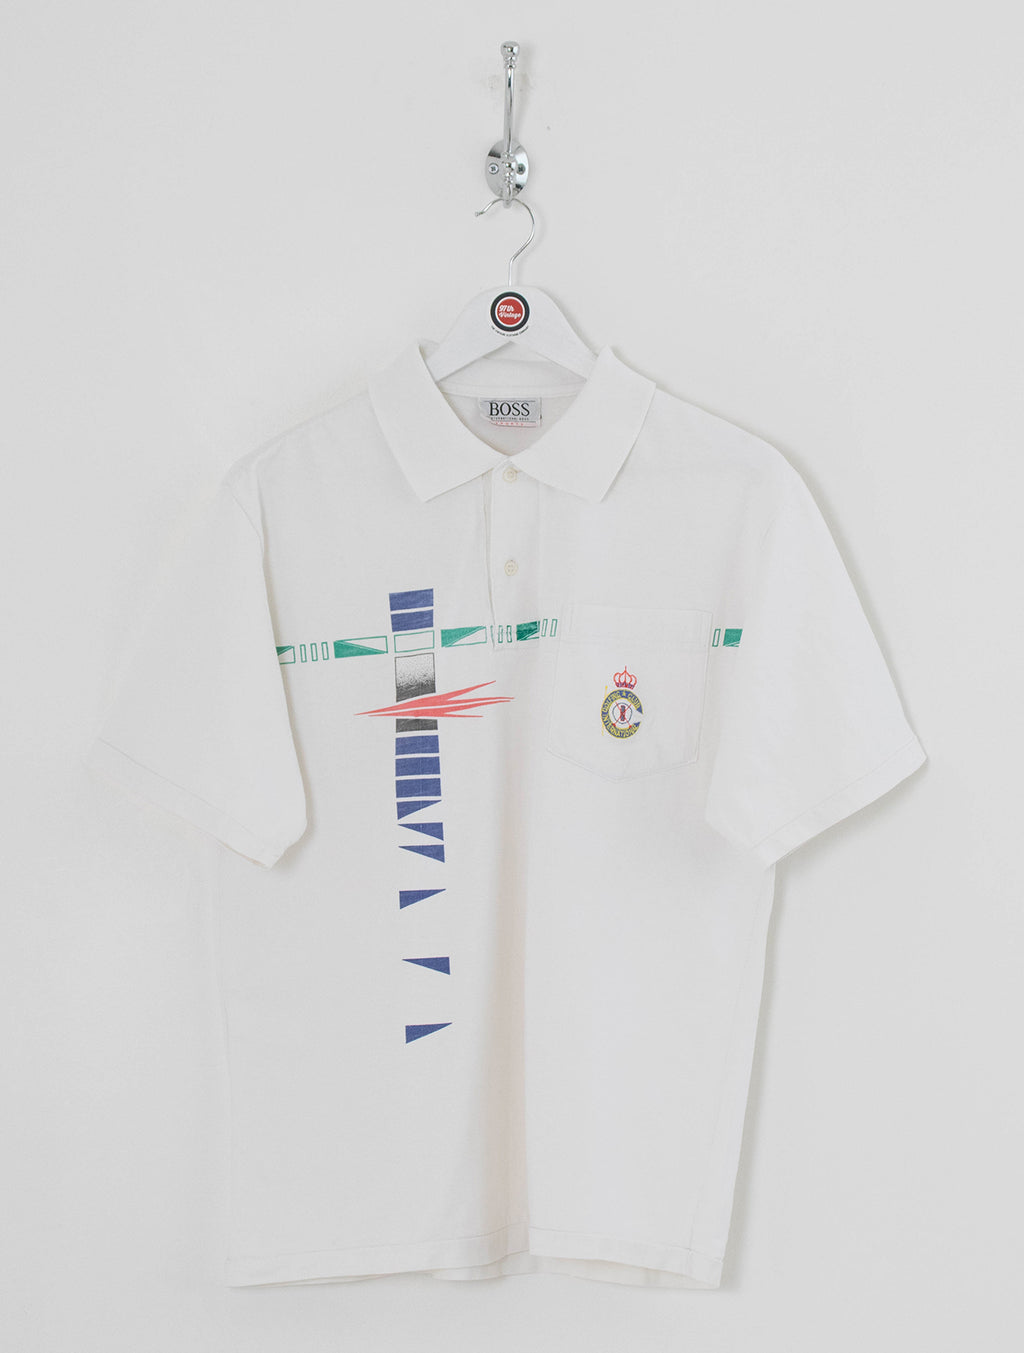 Hugo Boss Polo Shirt (L)